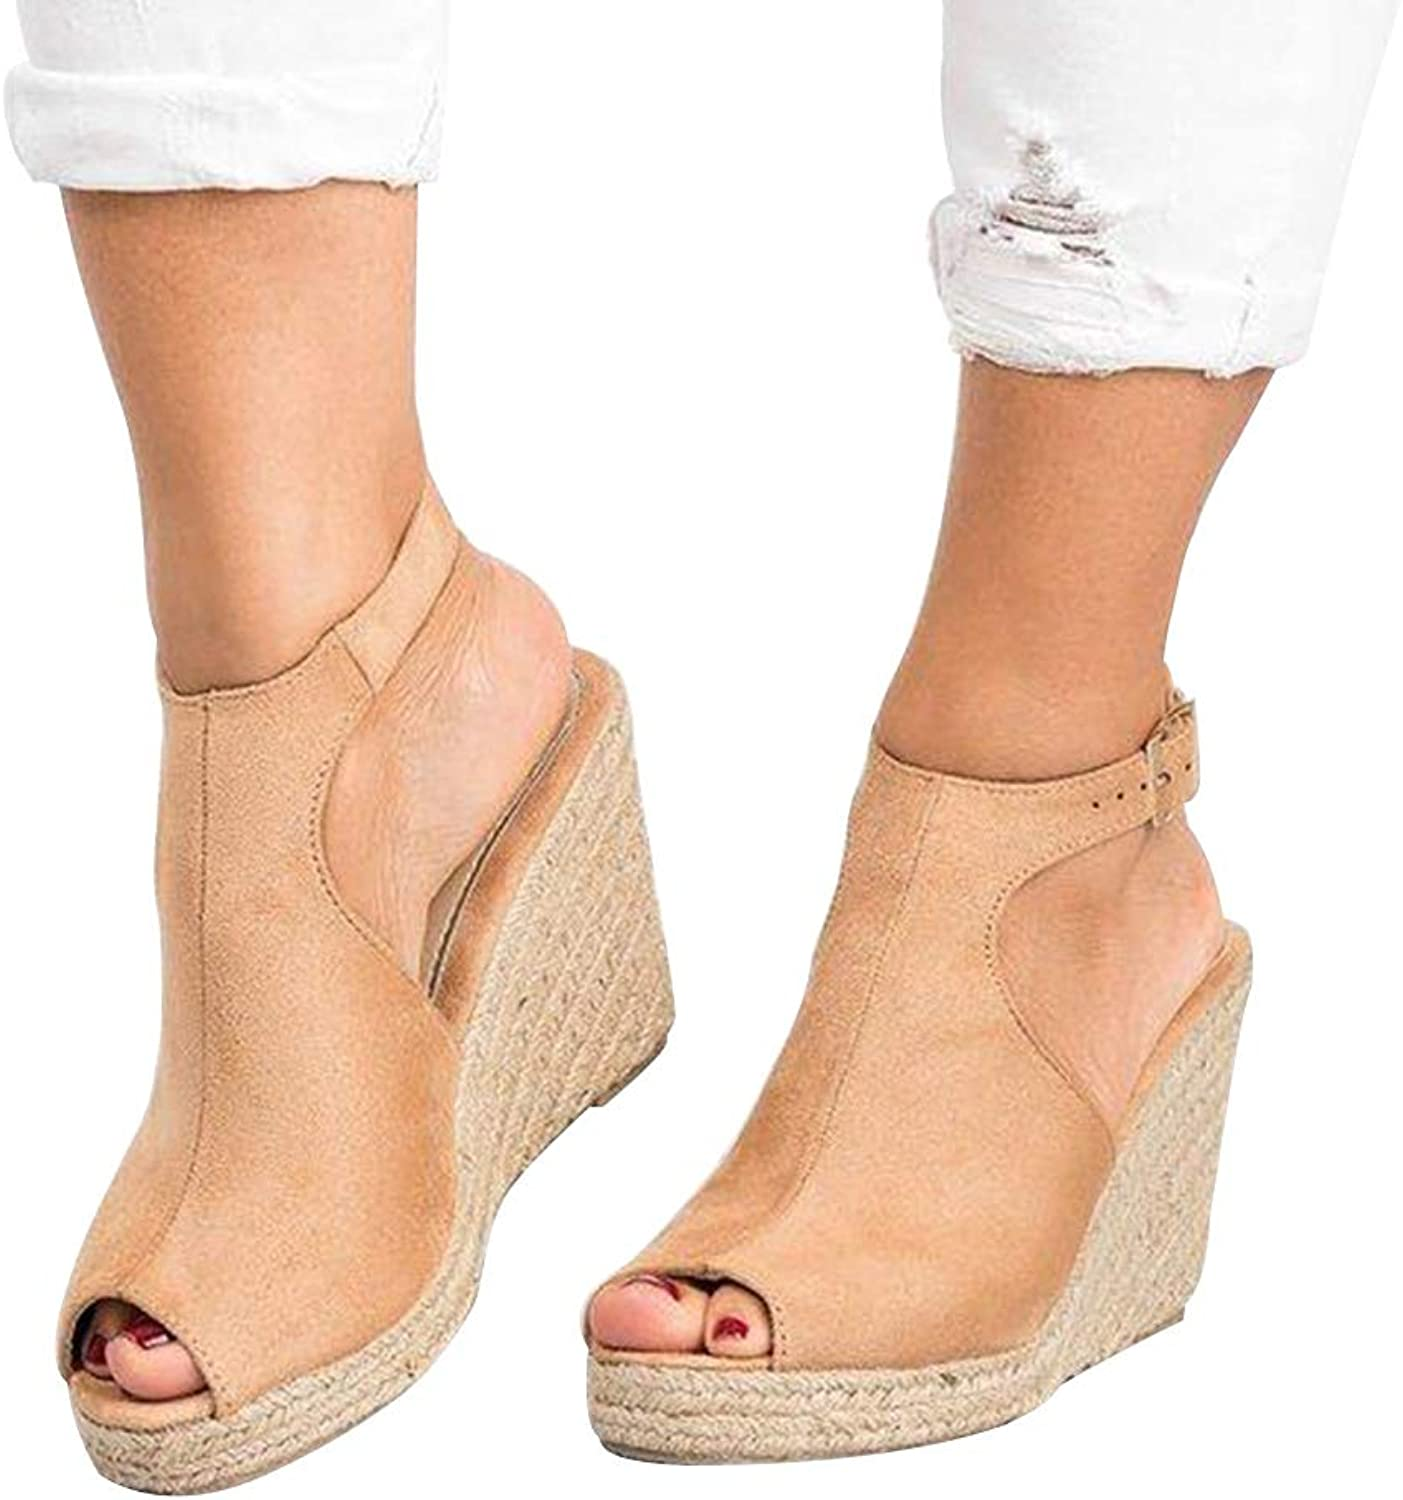 DoraTasia News Summer Women's Slingback Handmade Ankle Buckle Strap Open Toe Sandals Espadrilles Wedges Heel shoes